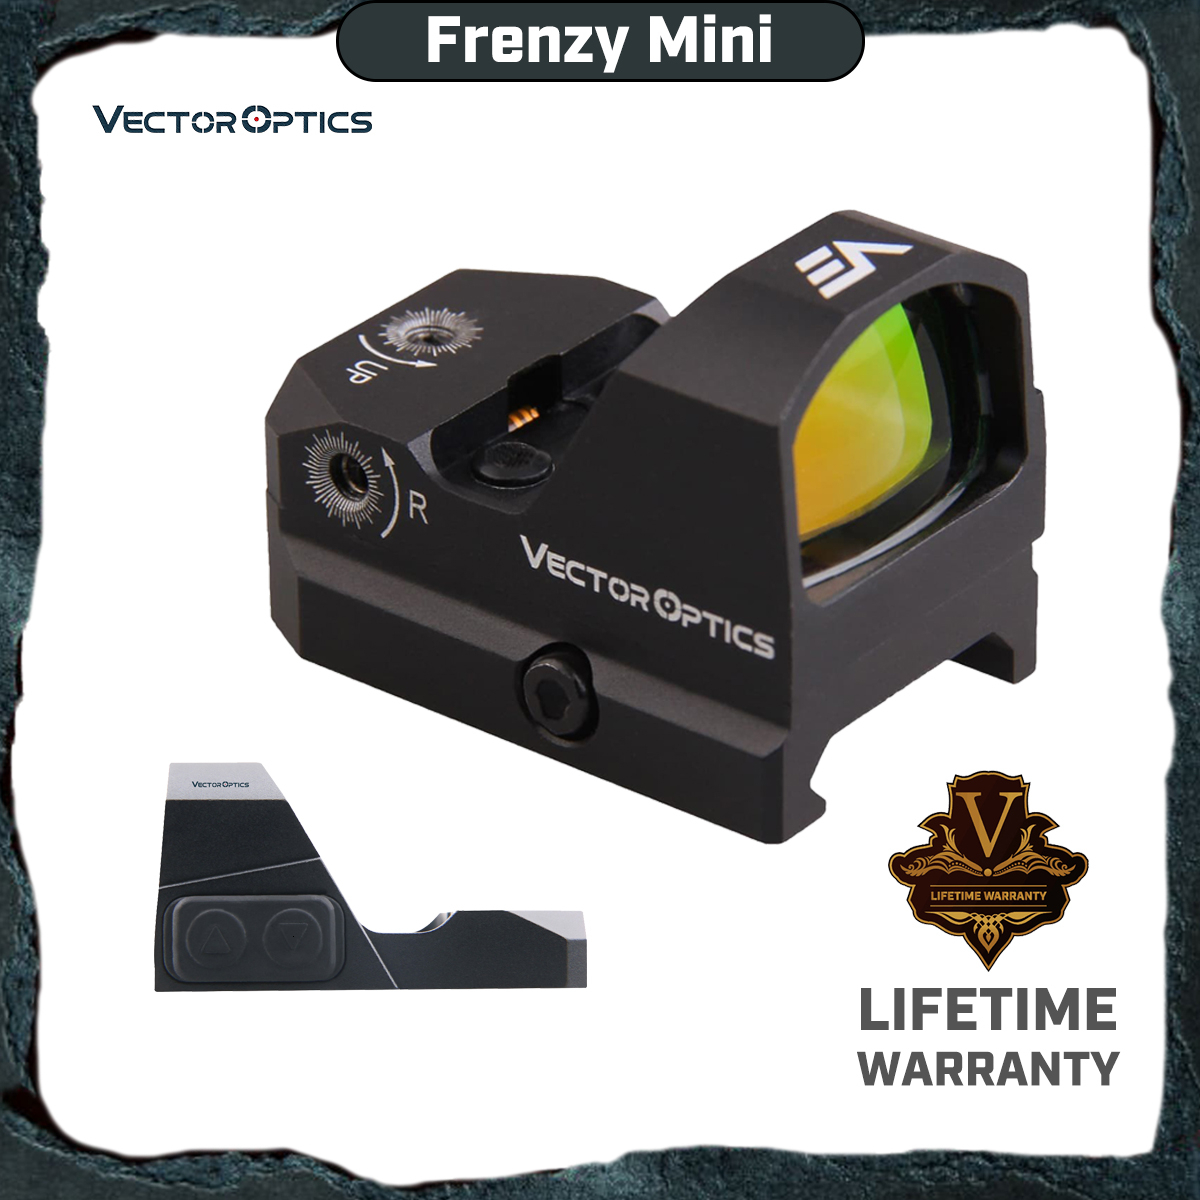 Vector Optics Frenzy 1x17x24 Red Dot Scope Pistol Handgun Sight IPX6 Water Proof Fit 21mm Picatinny GLOCK 17 19 9mm AR15 M4 AK